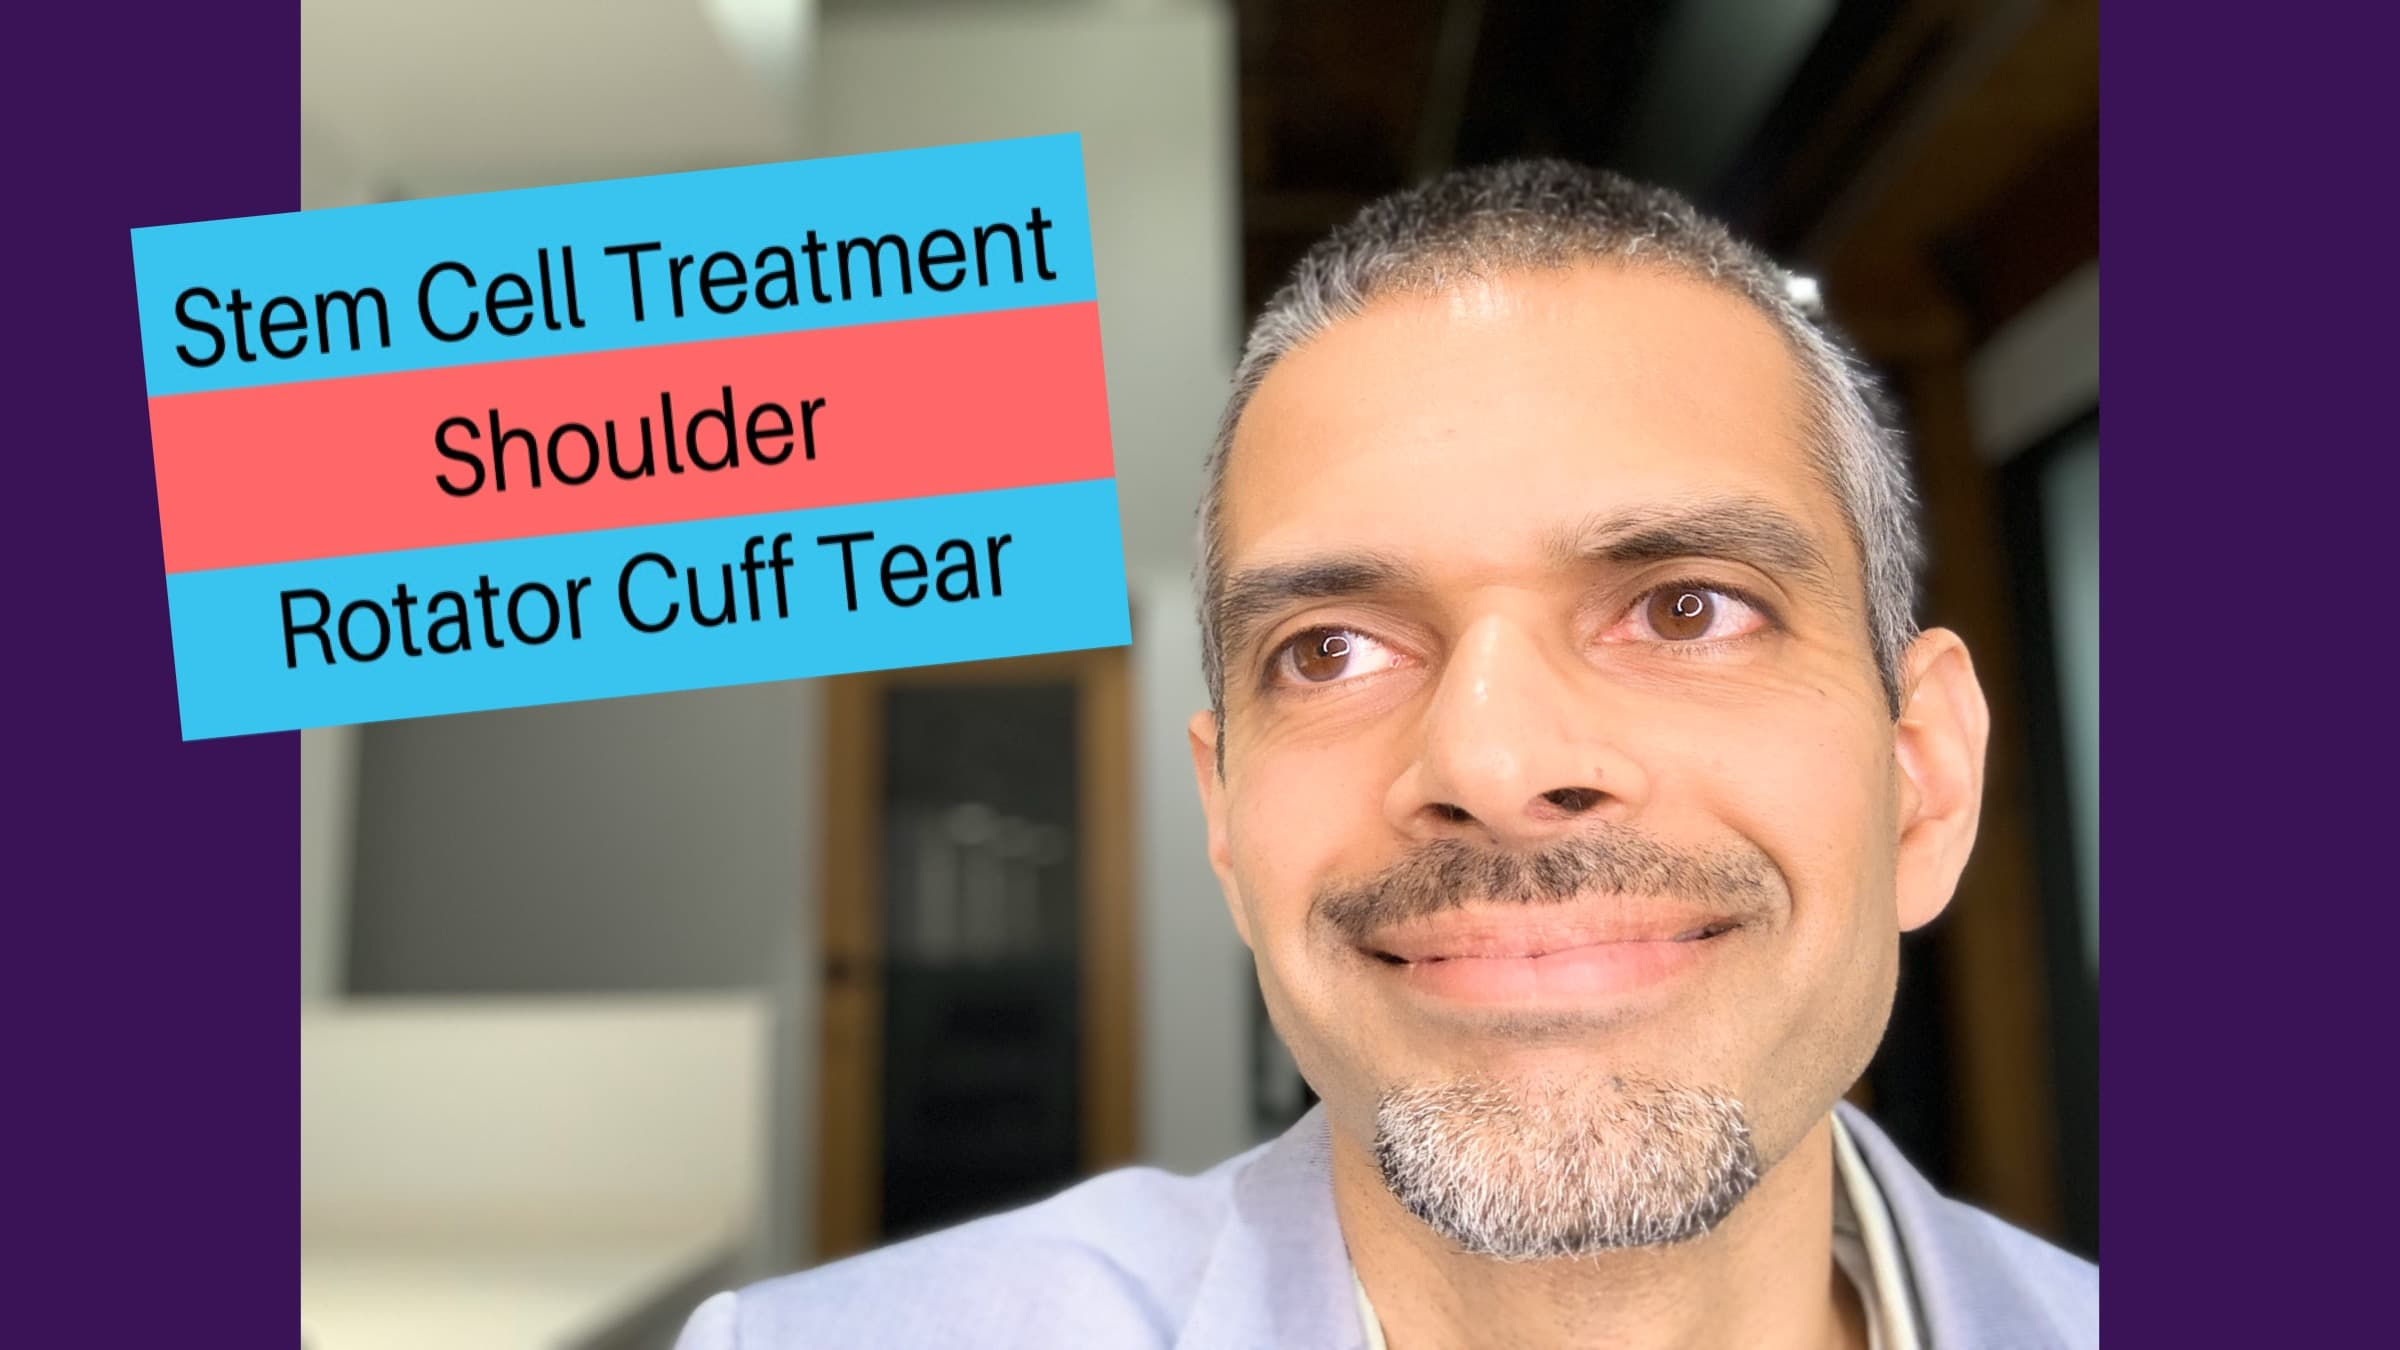 Stem Cell Treatment- Shoulder Rotator Cuff Tear